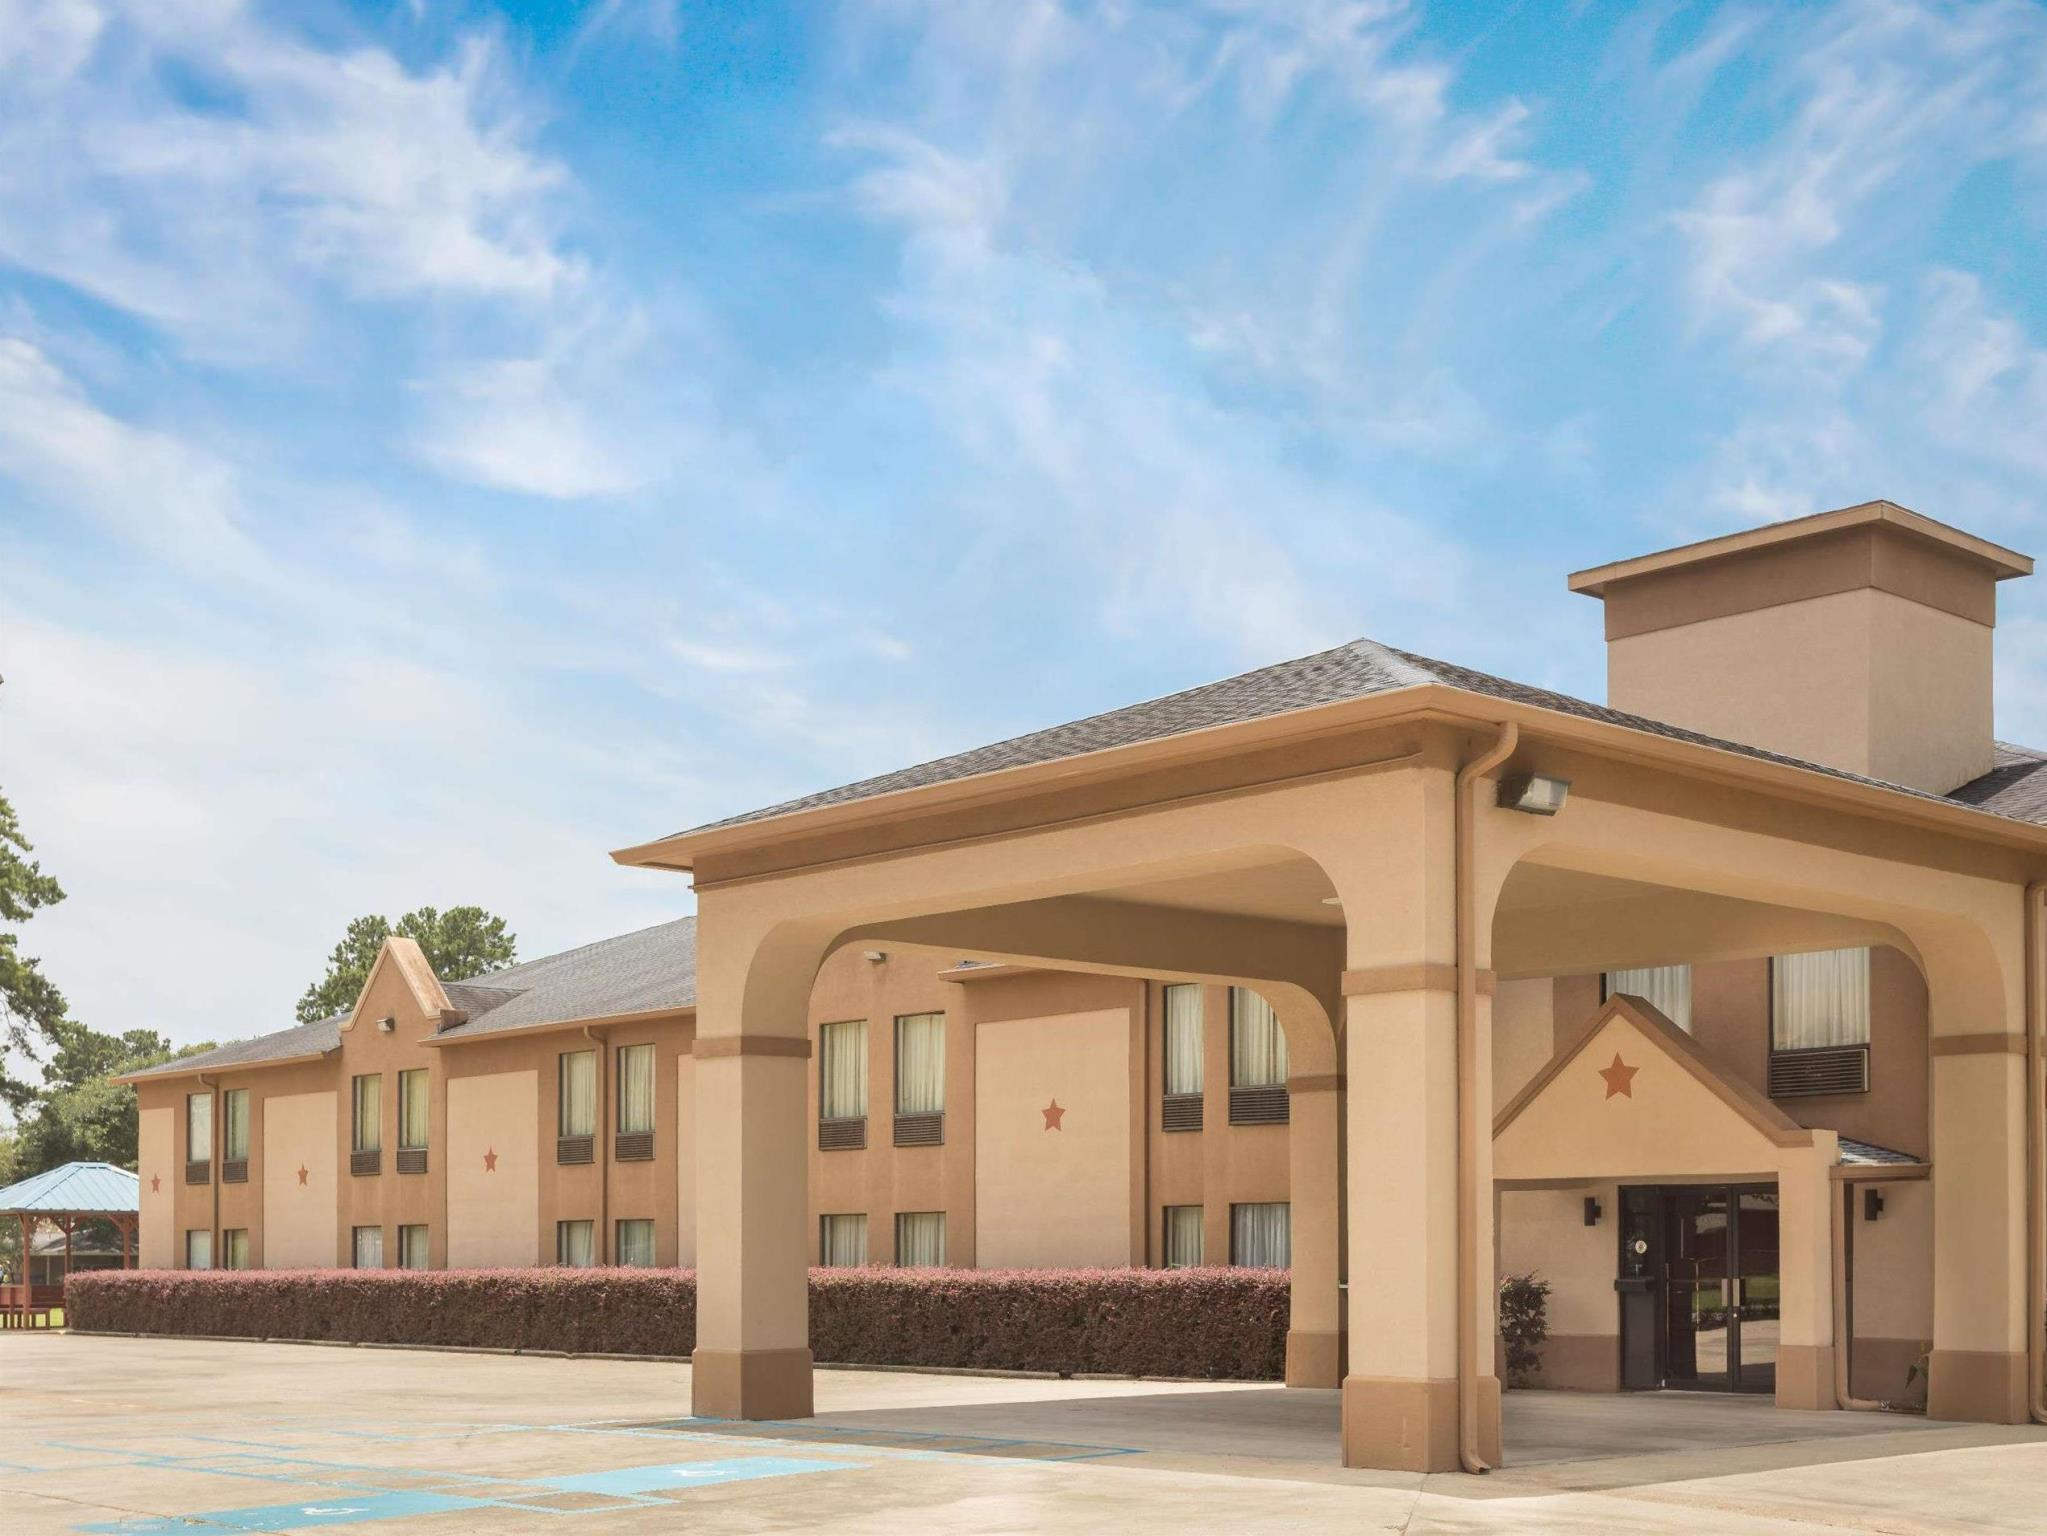 Days Inn And Suites By Wyndham Eunice